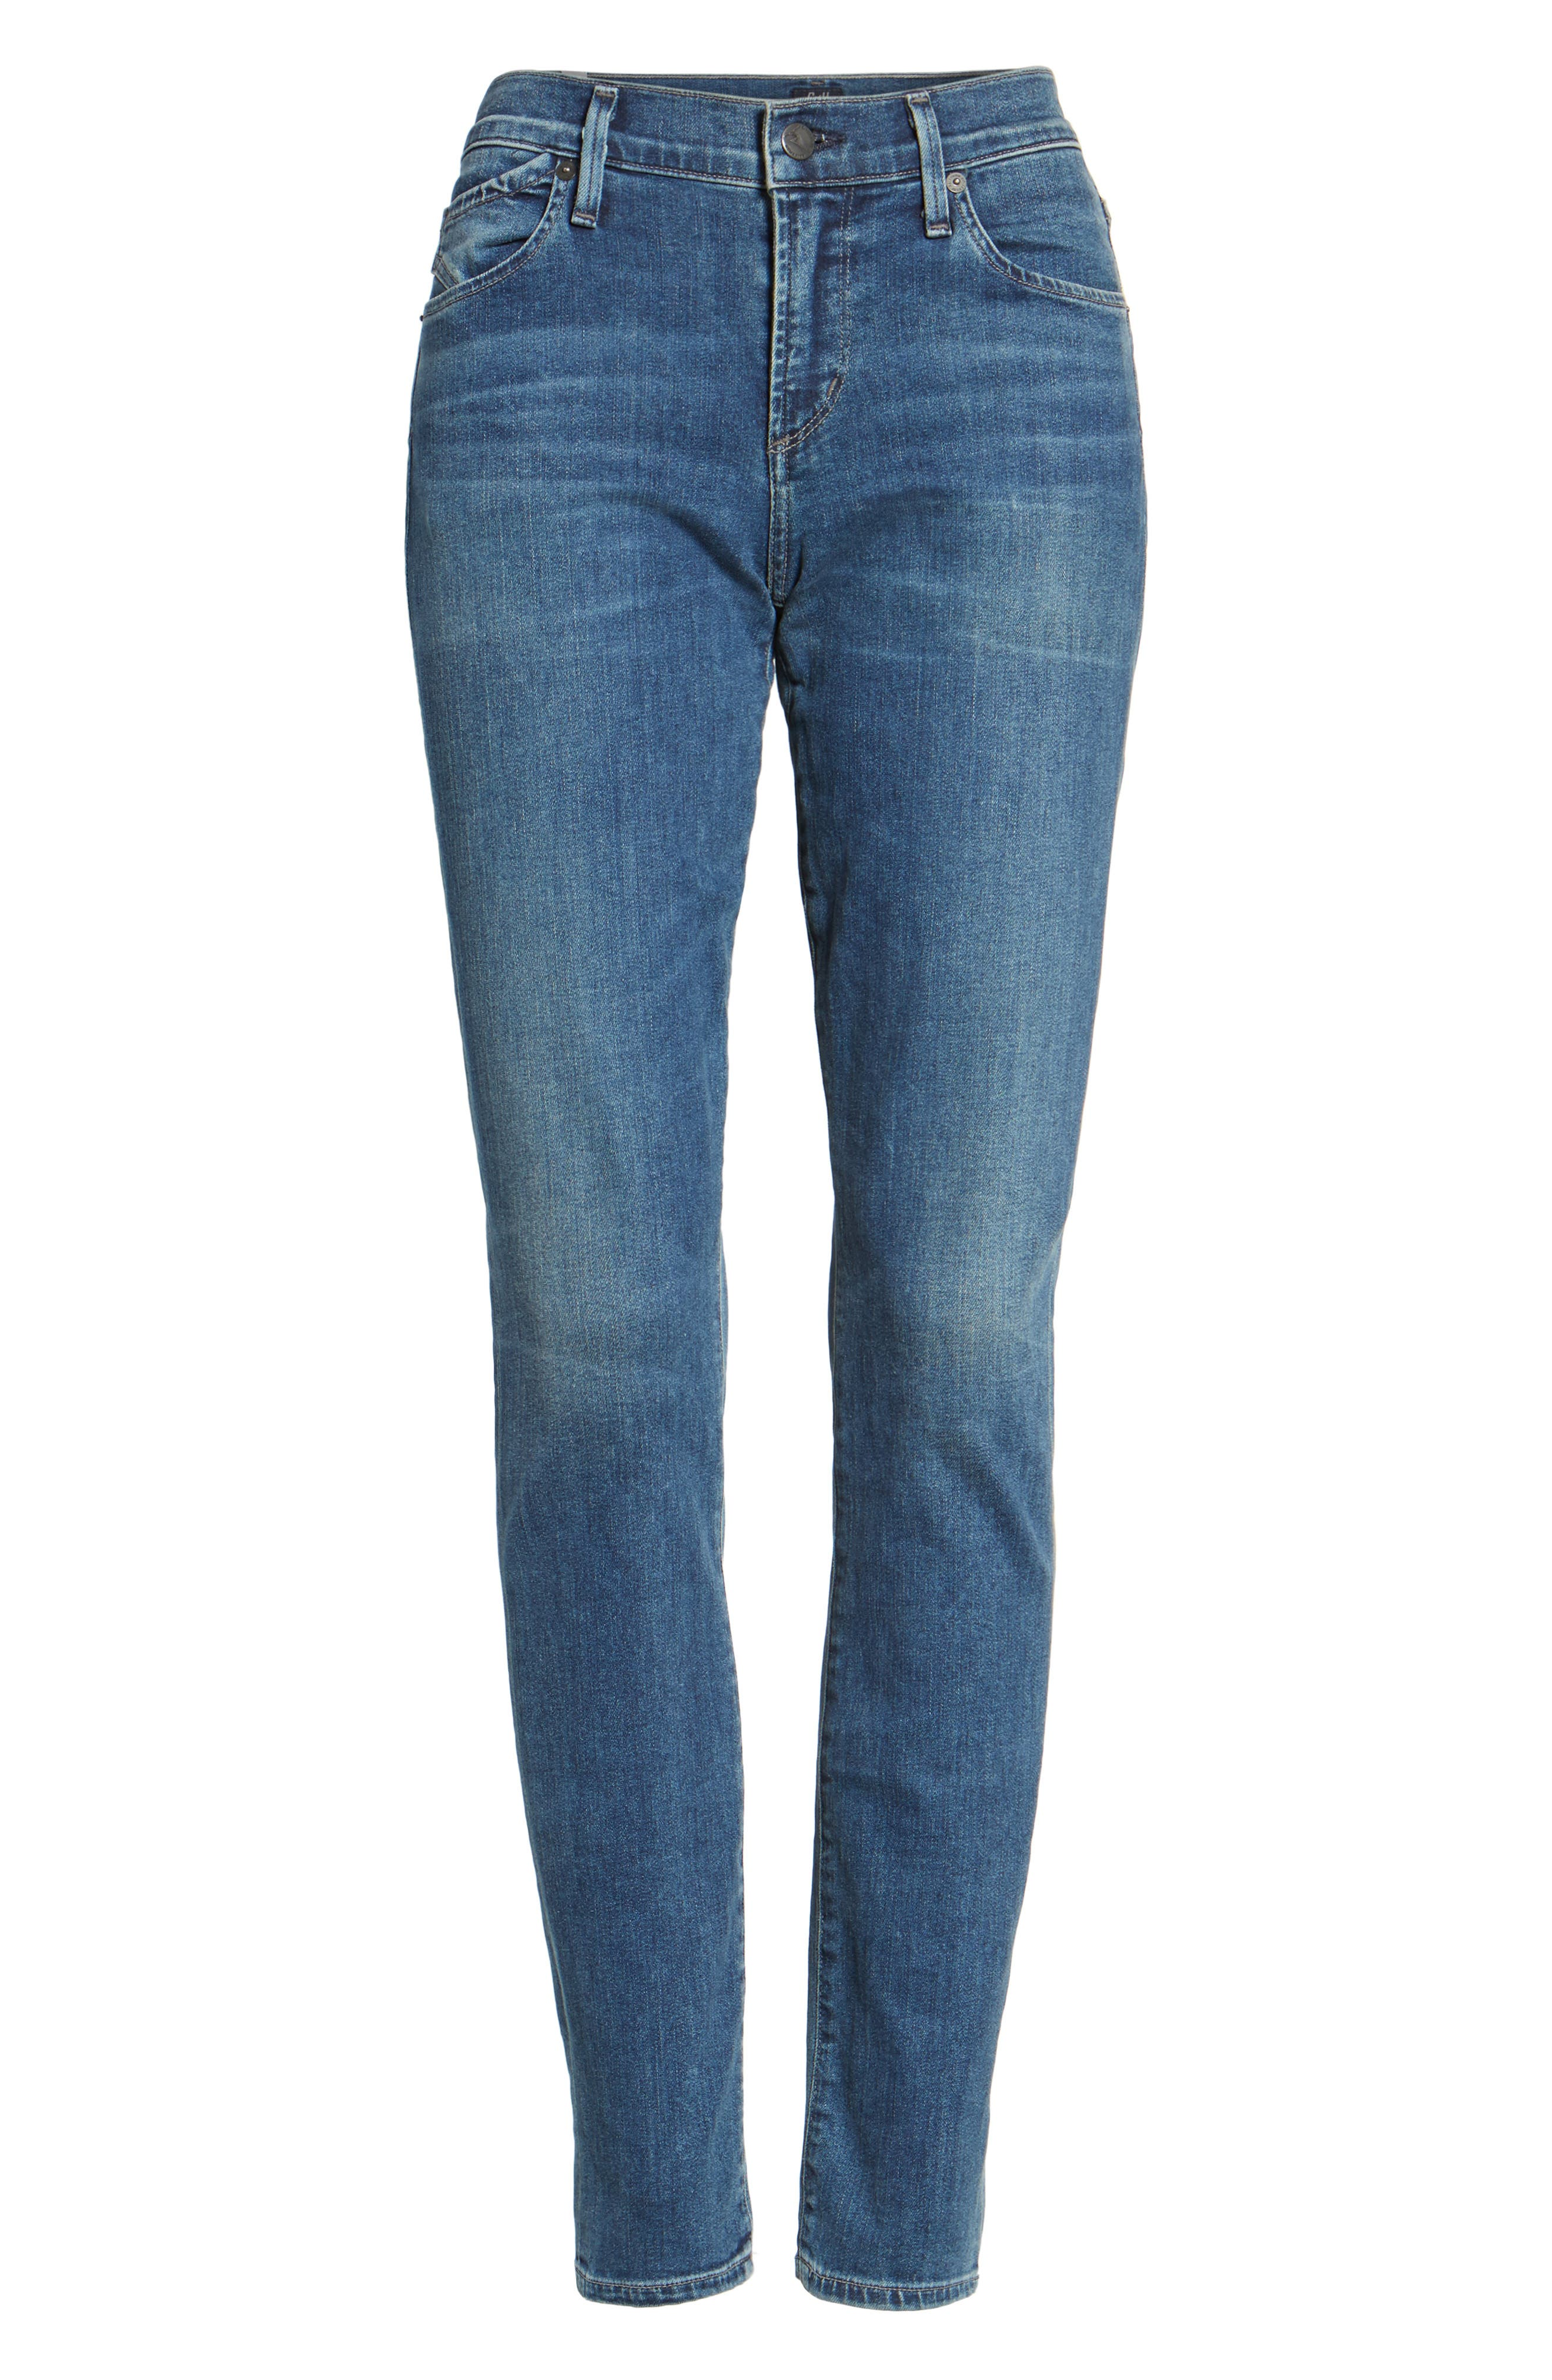 Skinny Jeans,                             Alternate thumbnail 8, color,                             400